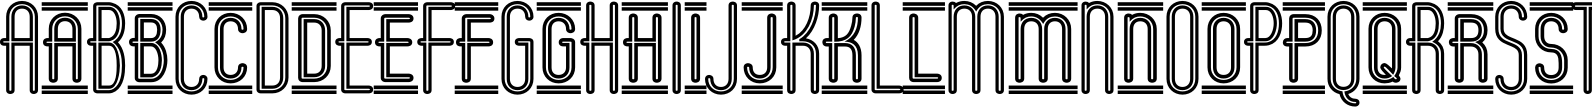 Operator Nine BTN Inline Lined Font